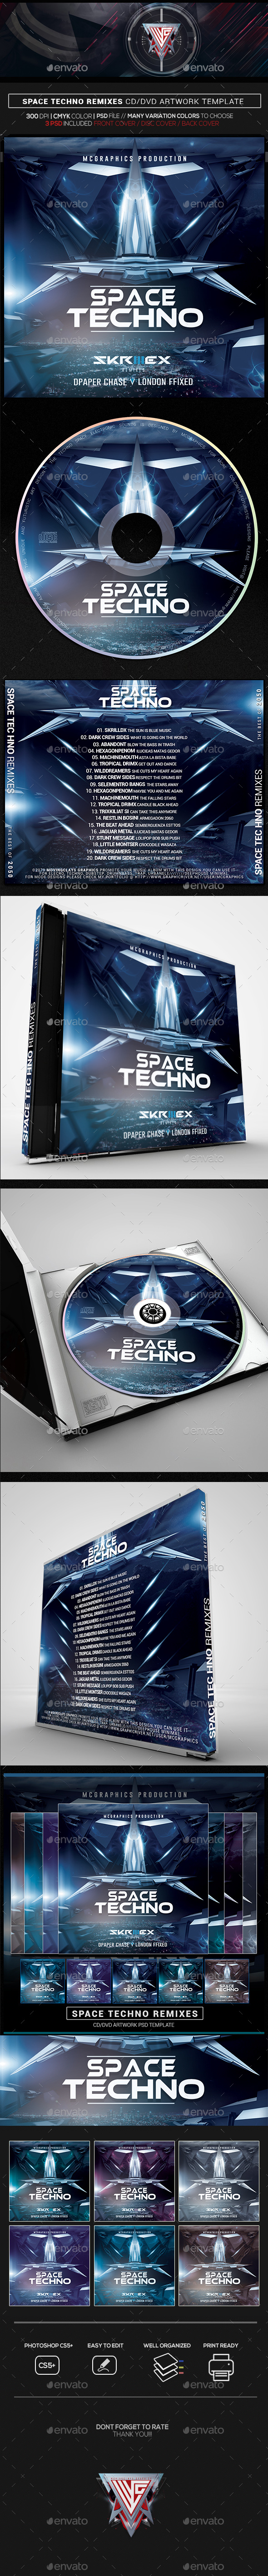 Space Techno Photoshop CD/DVD Template - CD & DVD Artwork Print Templates